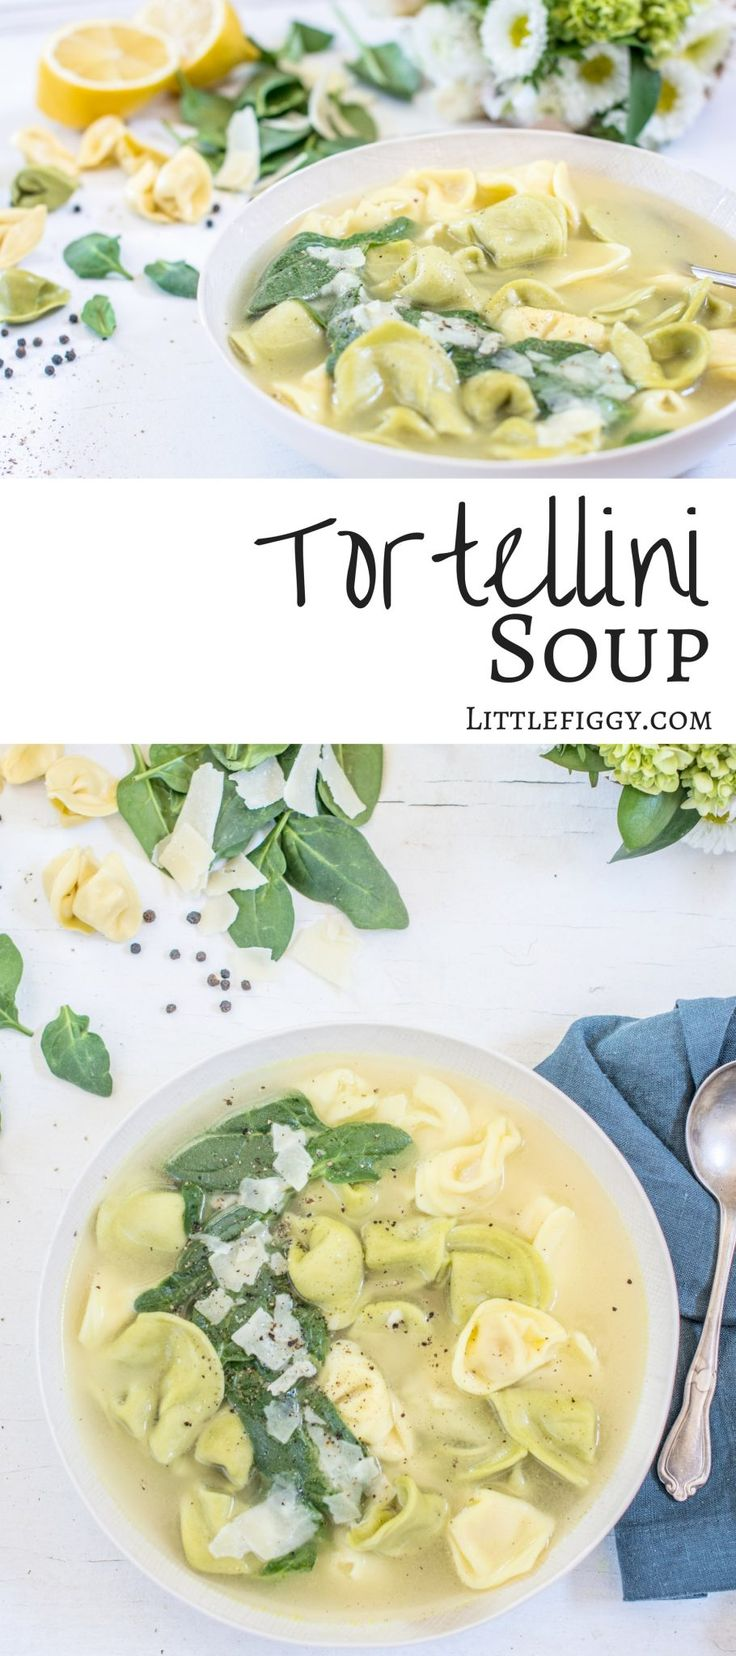 Try this brightly flavored spinach and Tortellini Soup, so easy to make and perfect for entertaining guests. Get the recipe at Little Figgy Food via @LittleFiggyFood